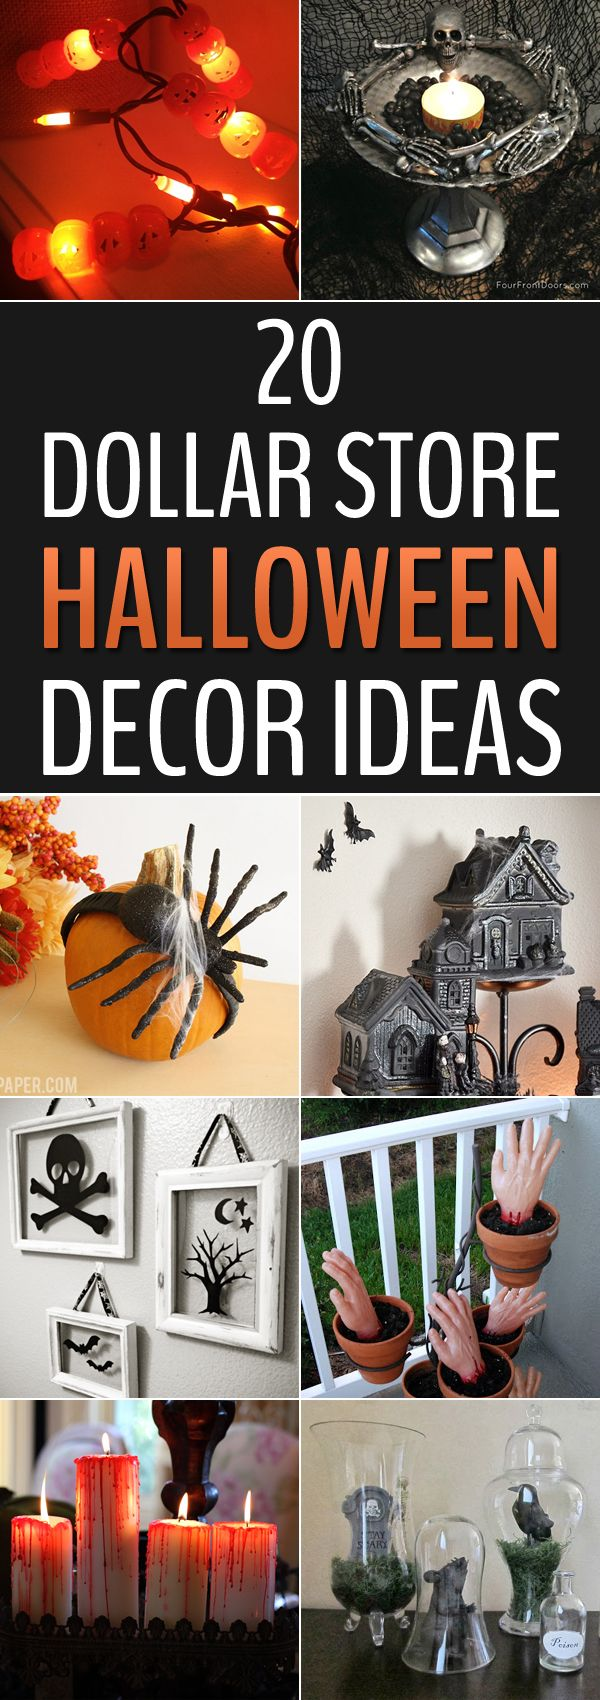 the best diy halloween decor ideas using cheap supplies from the dollar store - Cheap Halloween Party Decorations